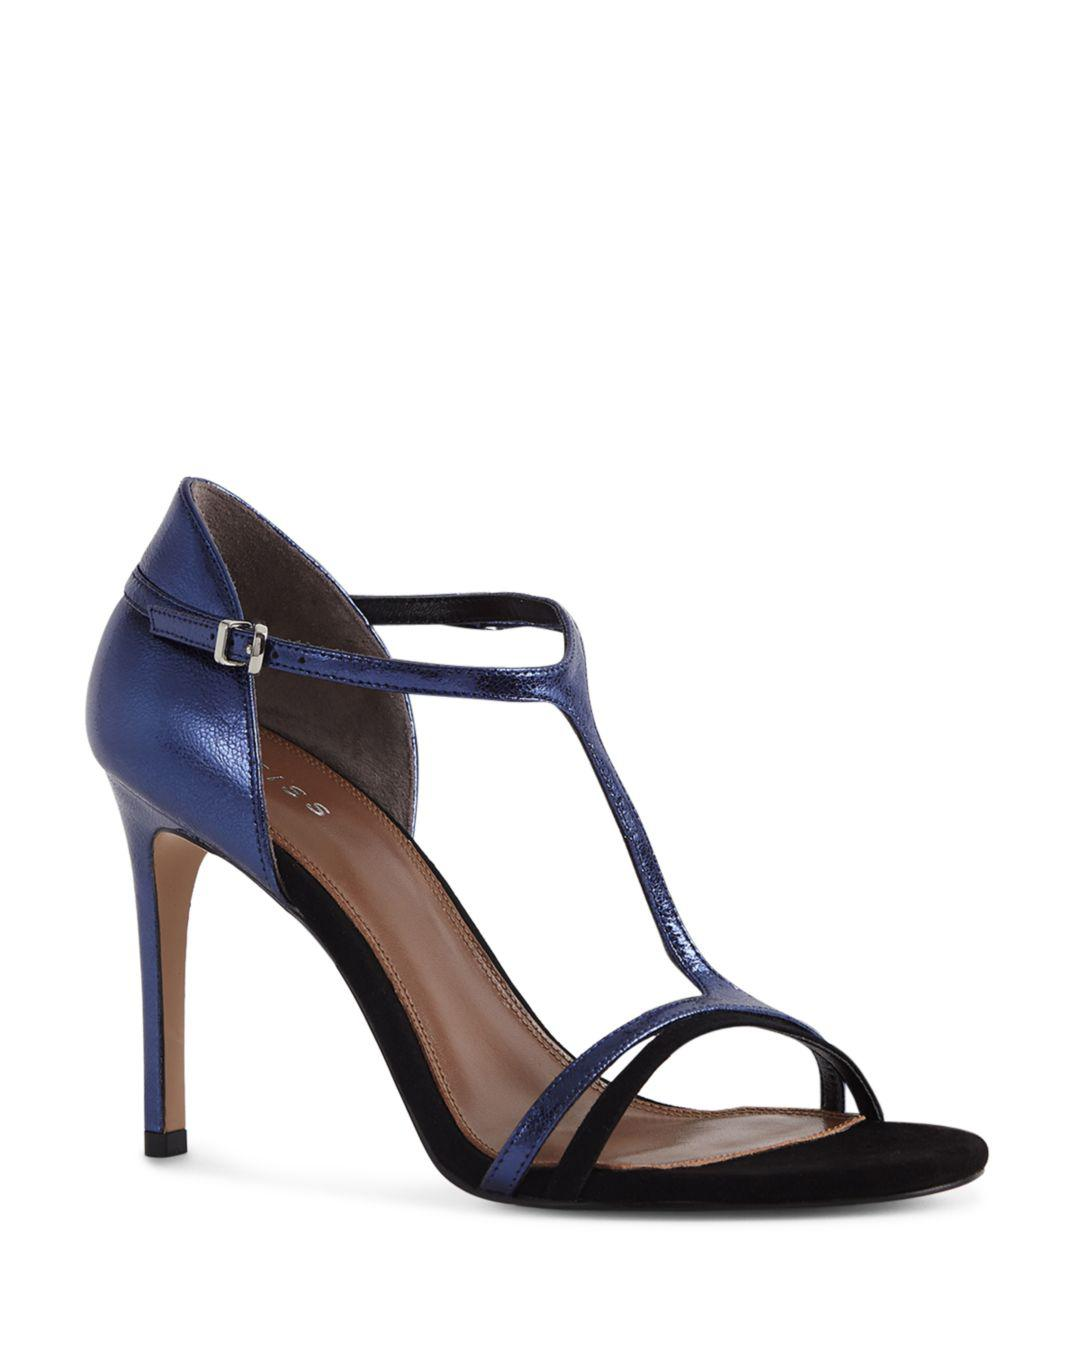 ab40e7aeb926f3 Reiss Women s Constance Leather High-heel Sandals in Blue - Lyst